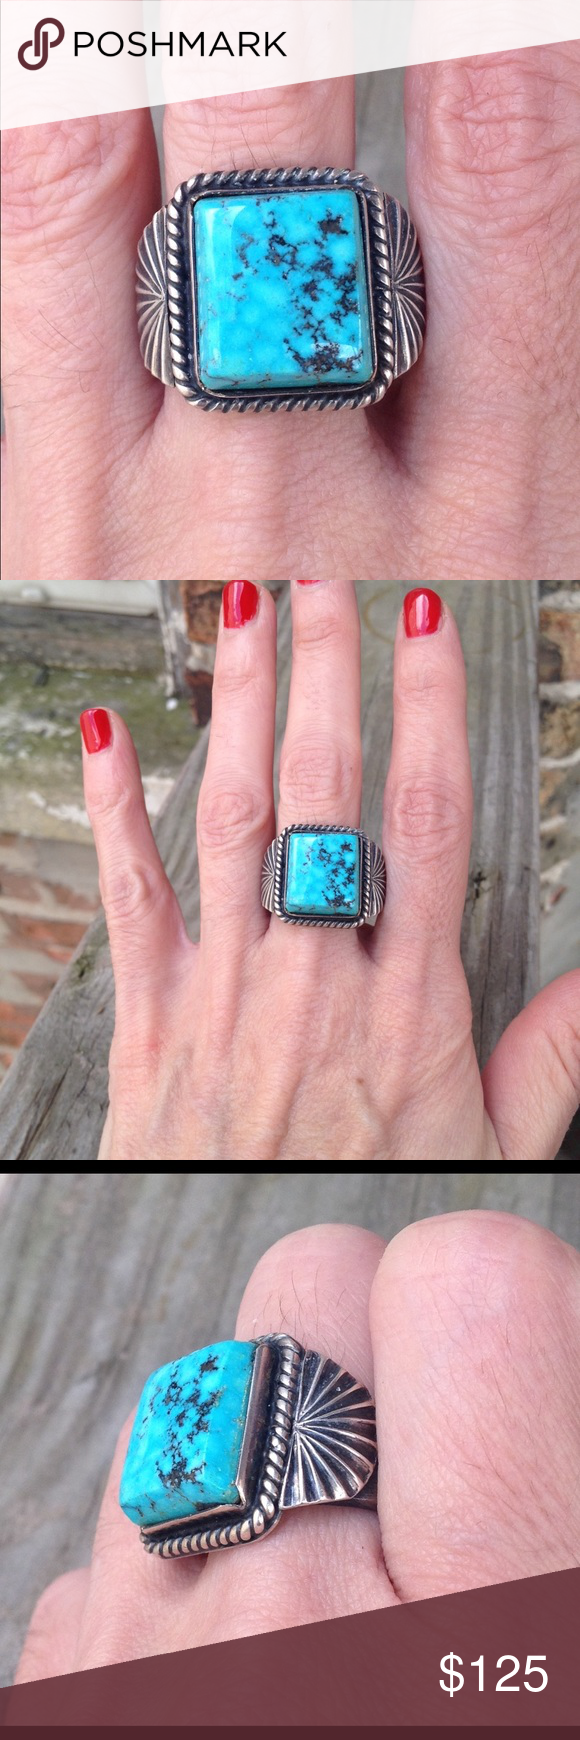 Vintage Native American Silver Ring | Turquoise stone, Native ...